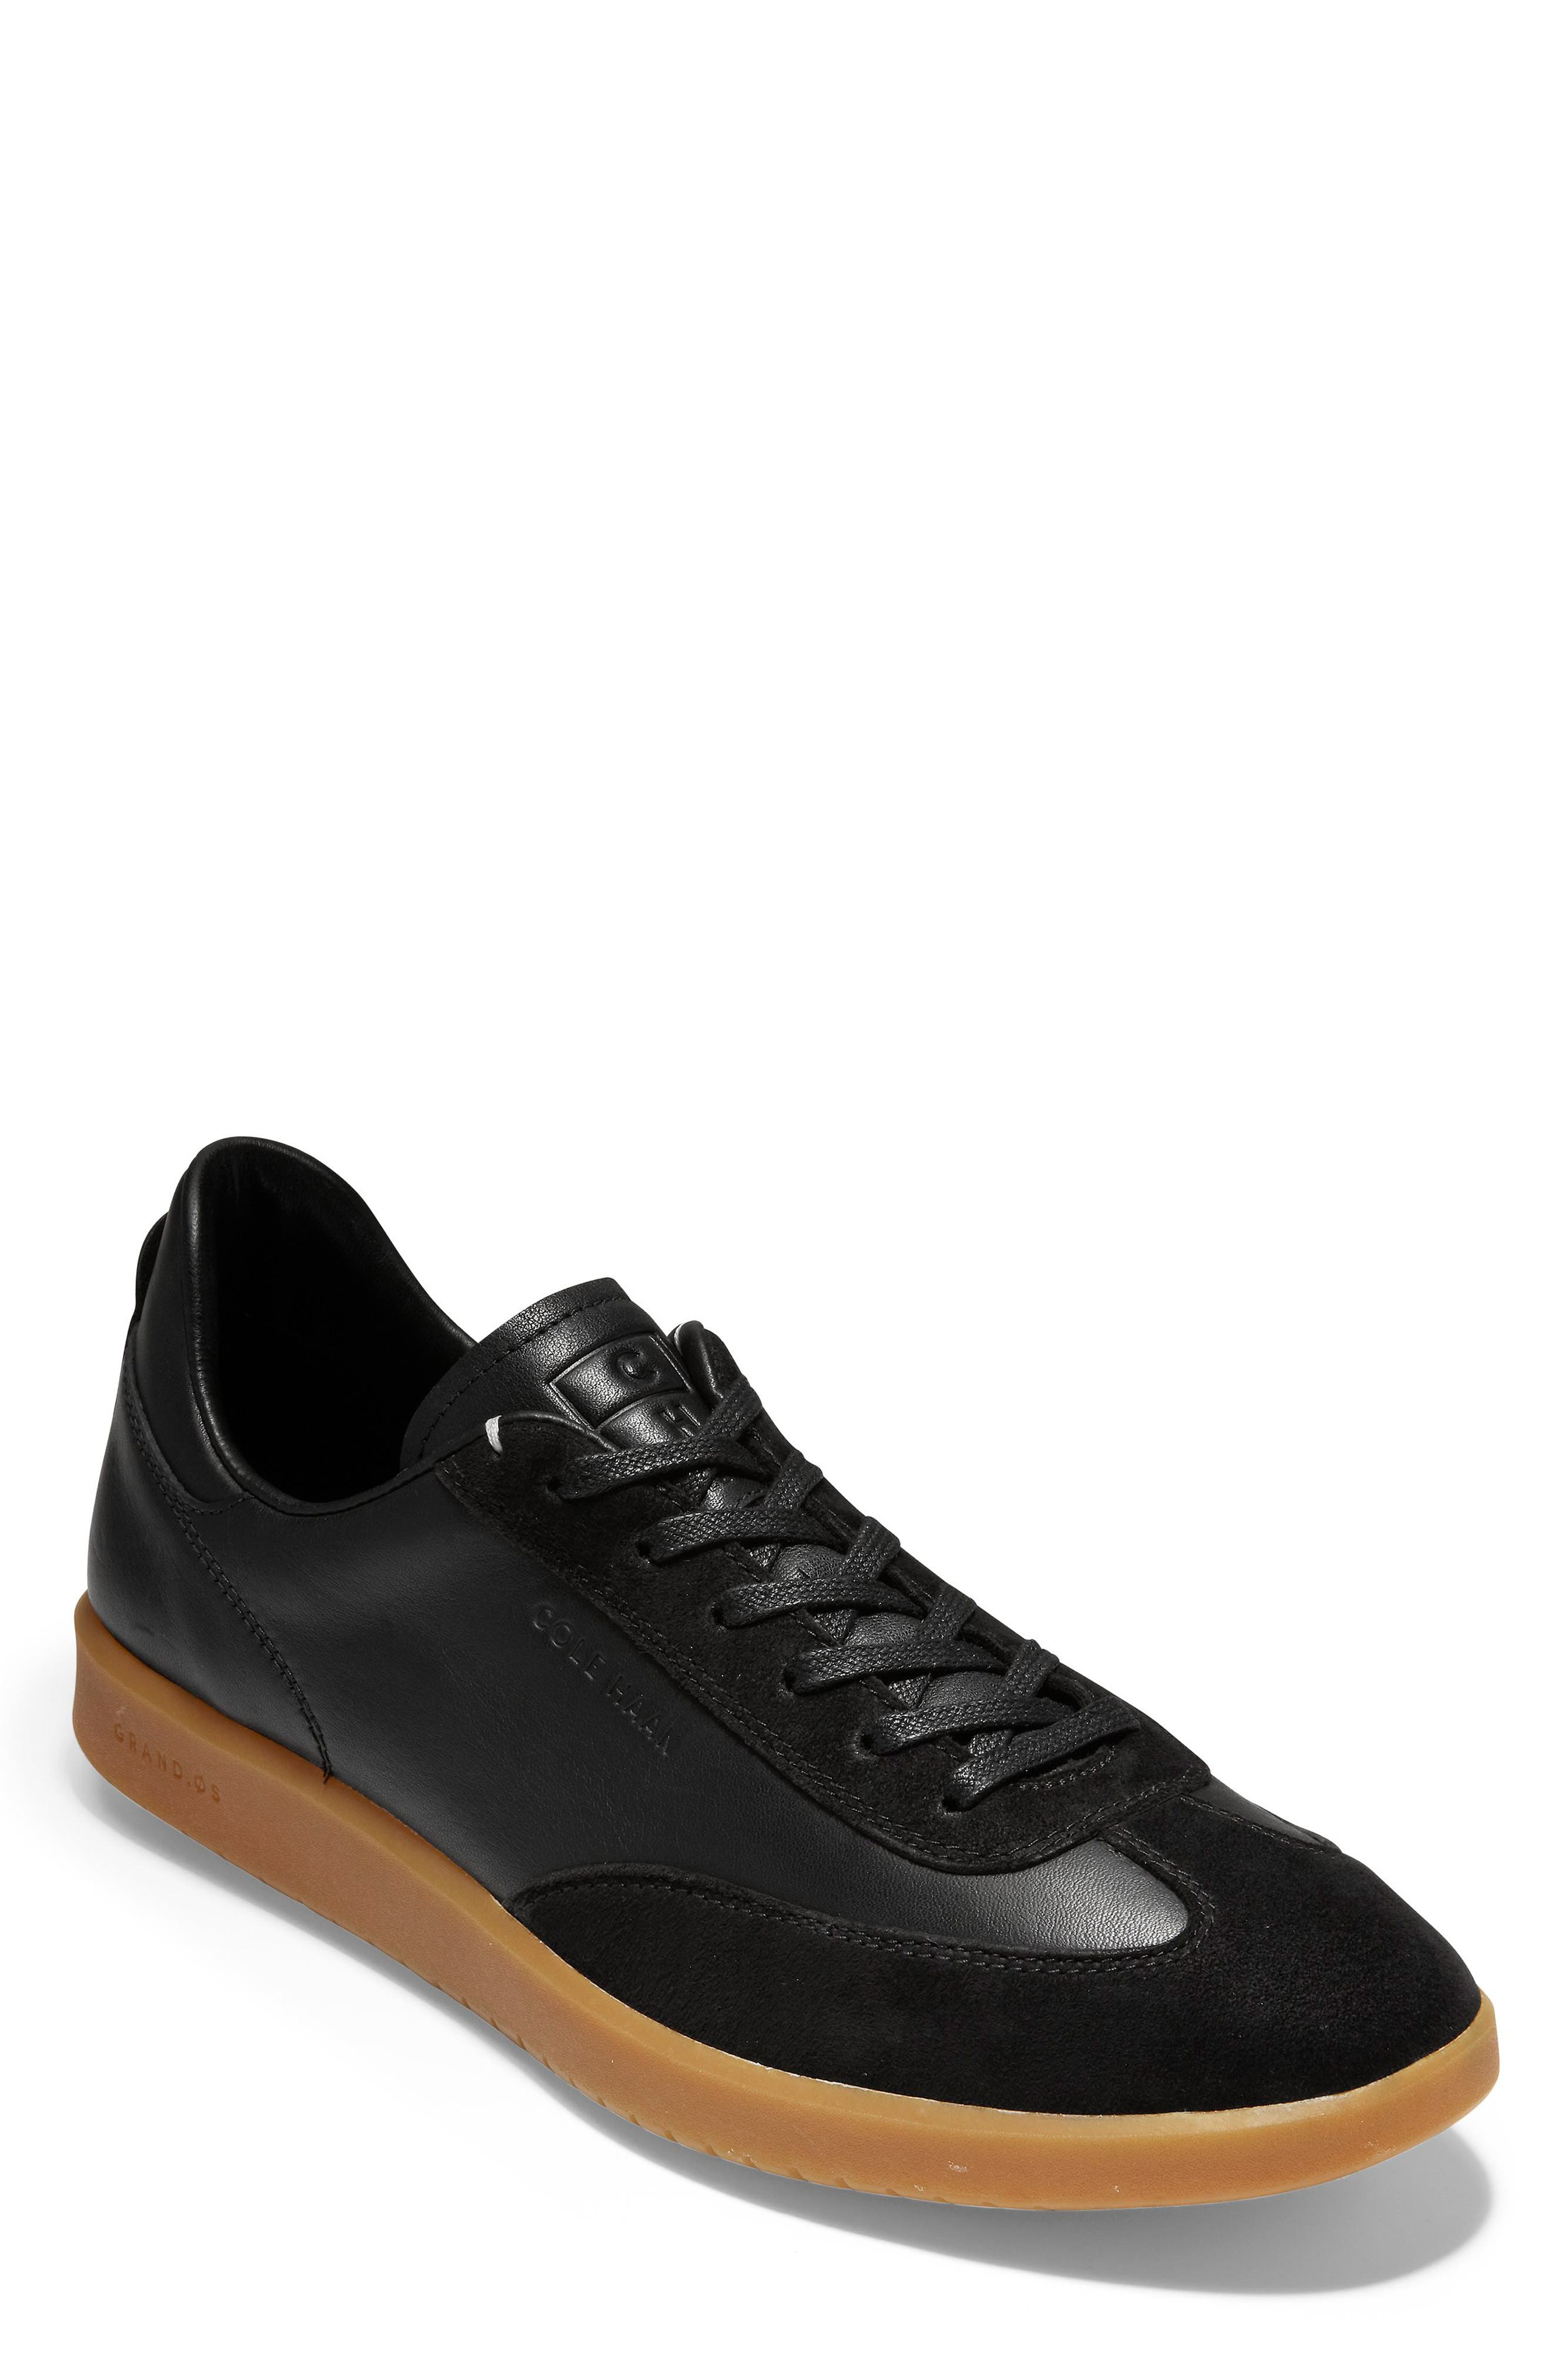 GrandPro Turf Sneaker, Main, color, BLACK LEATHER/ SUEDE